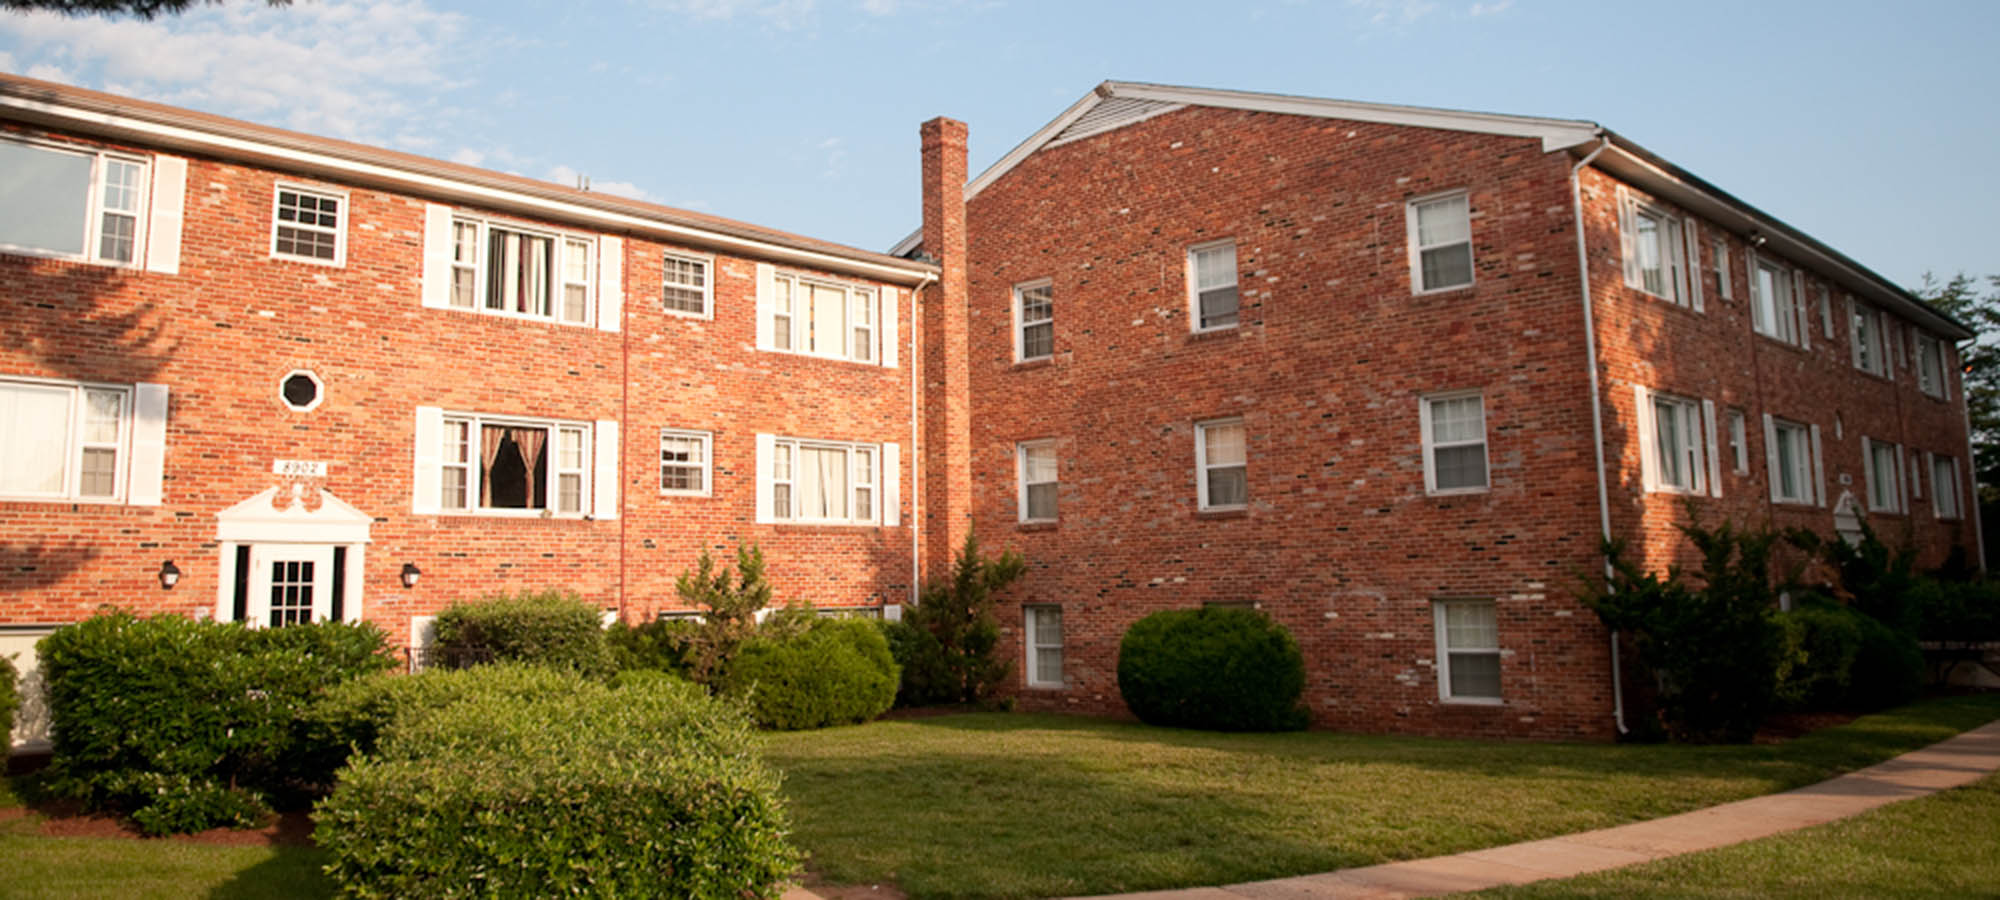 Apartments in Manassas, VA